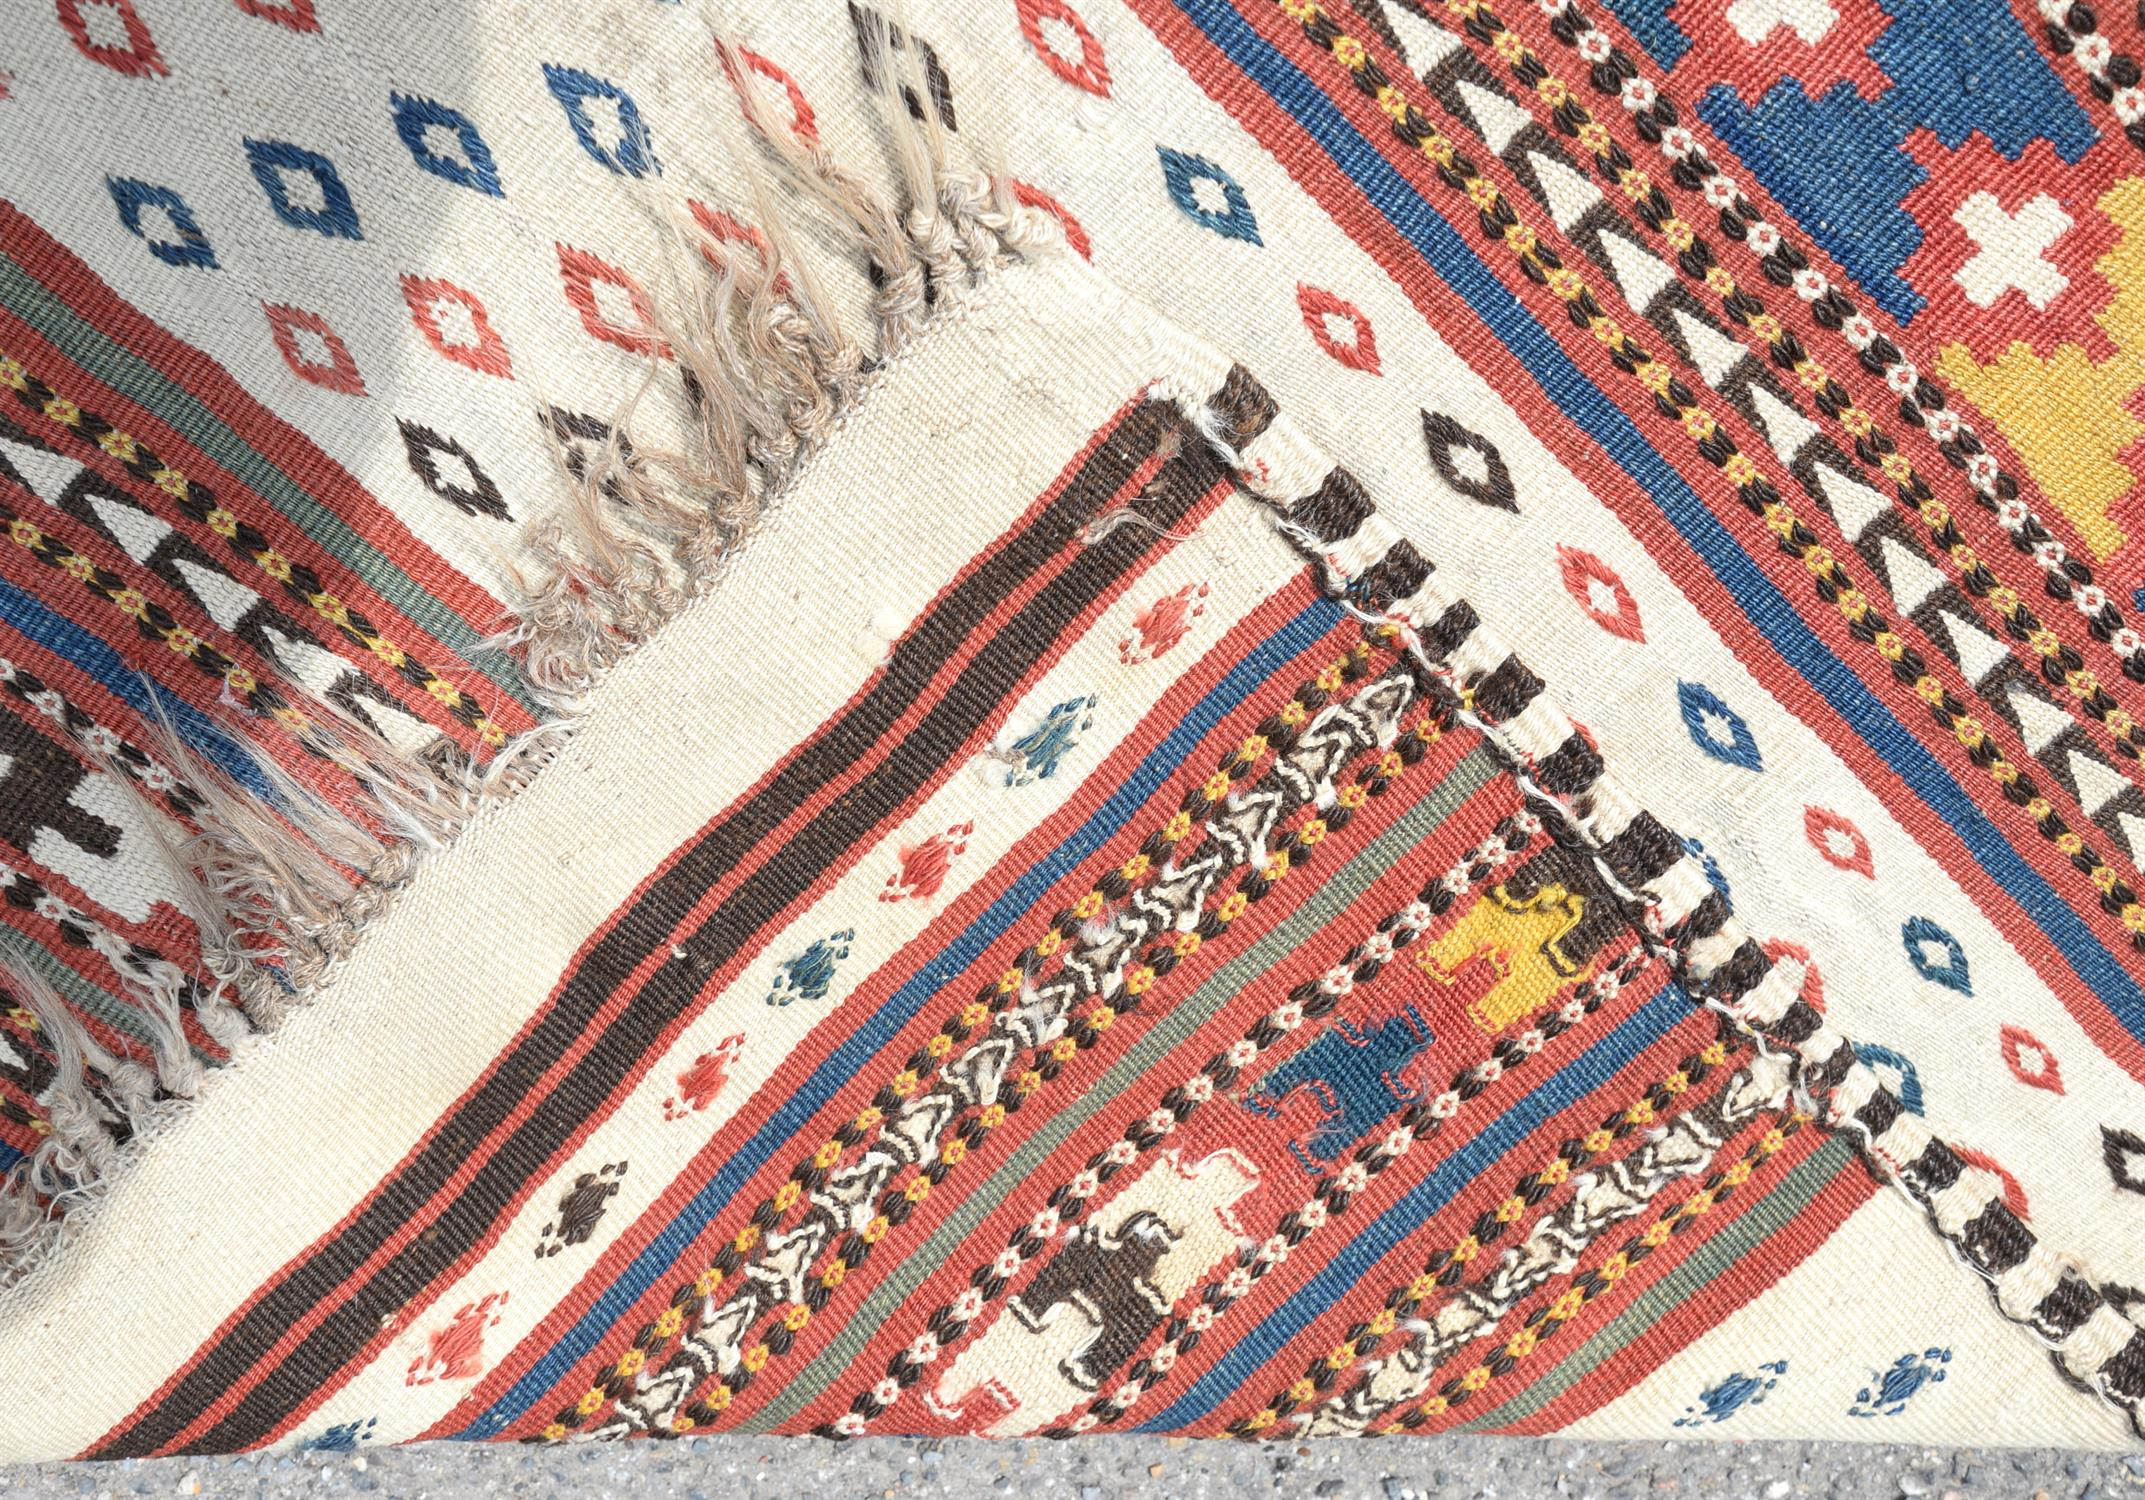 Tribal woven wall hanging with bands of geometric decoration, 124 x 130cm - Image 2 of 2